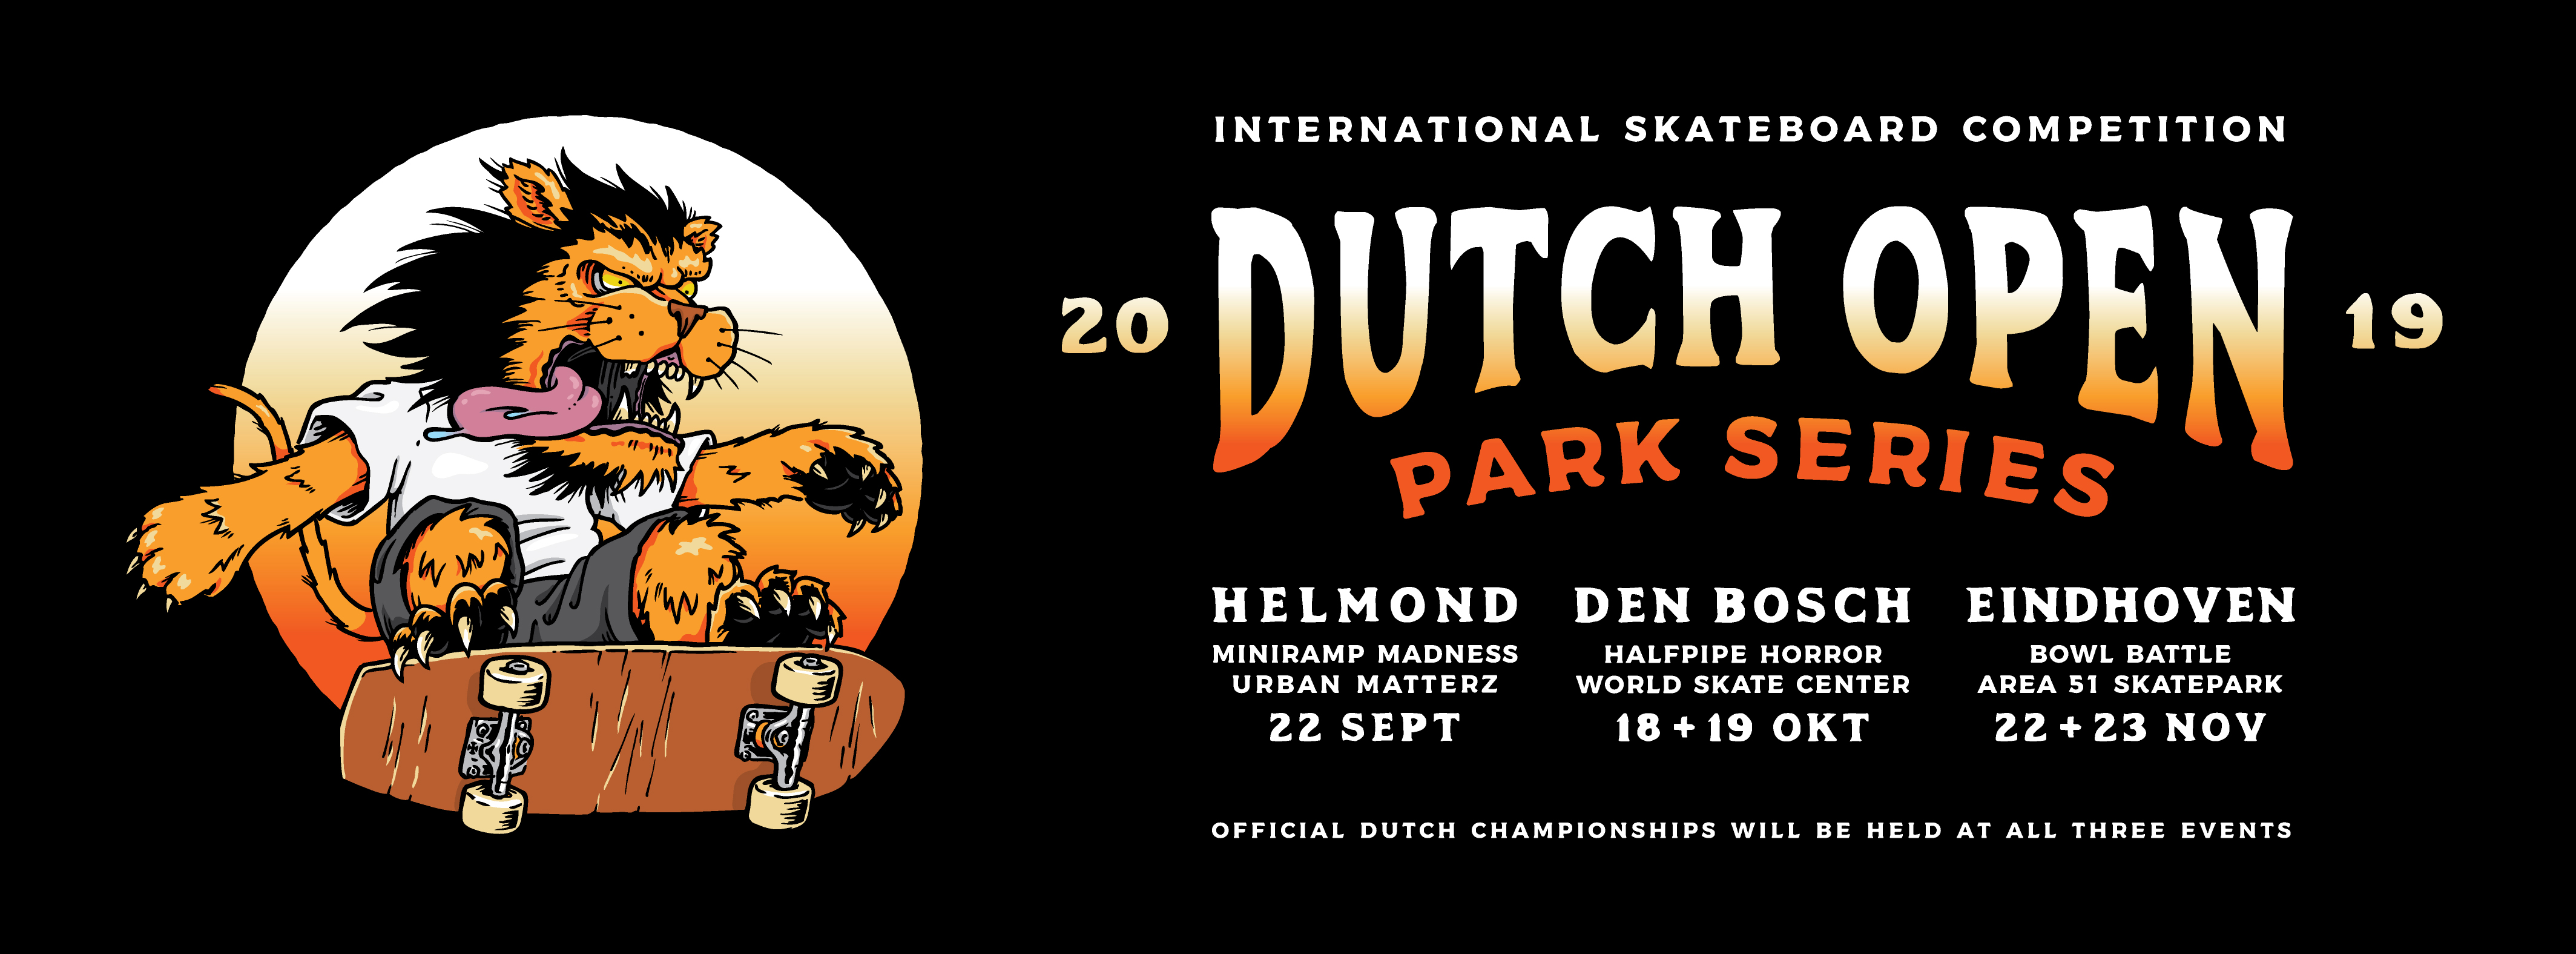 Dutch Open Park Series - Stop 1 Miniramp Madness